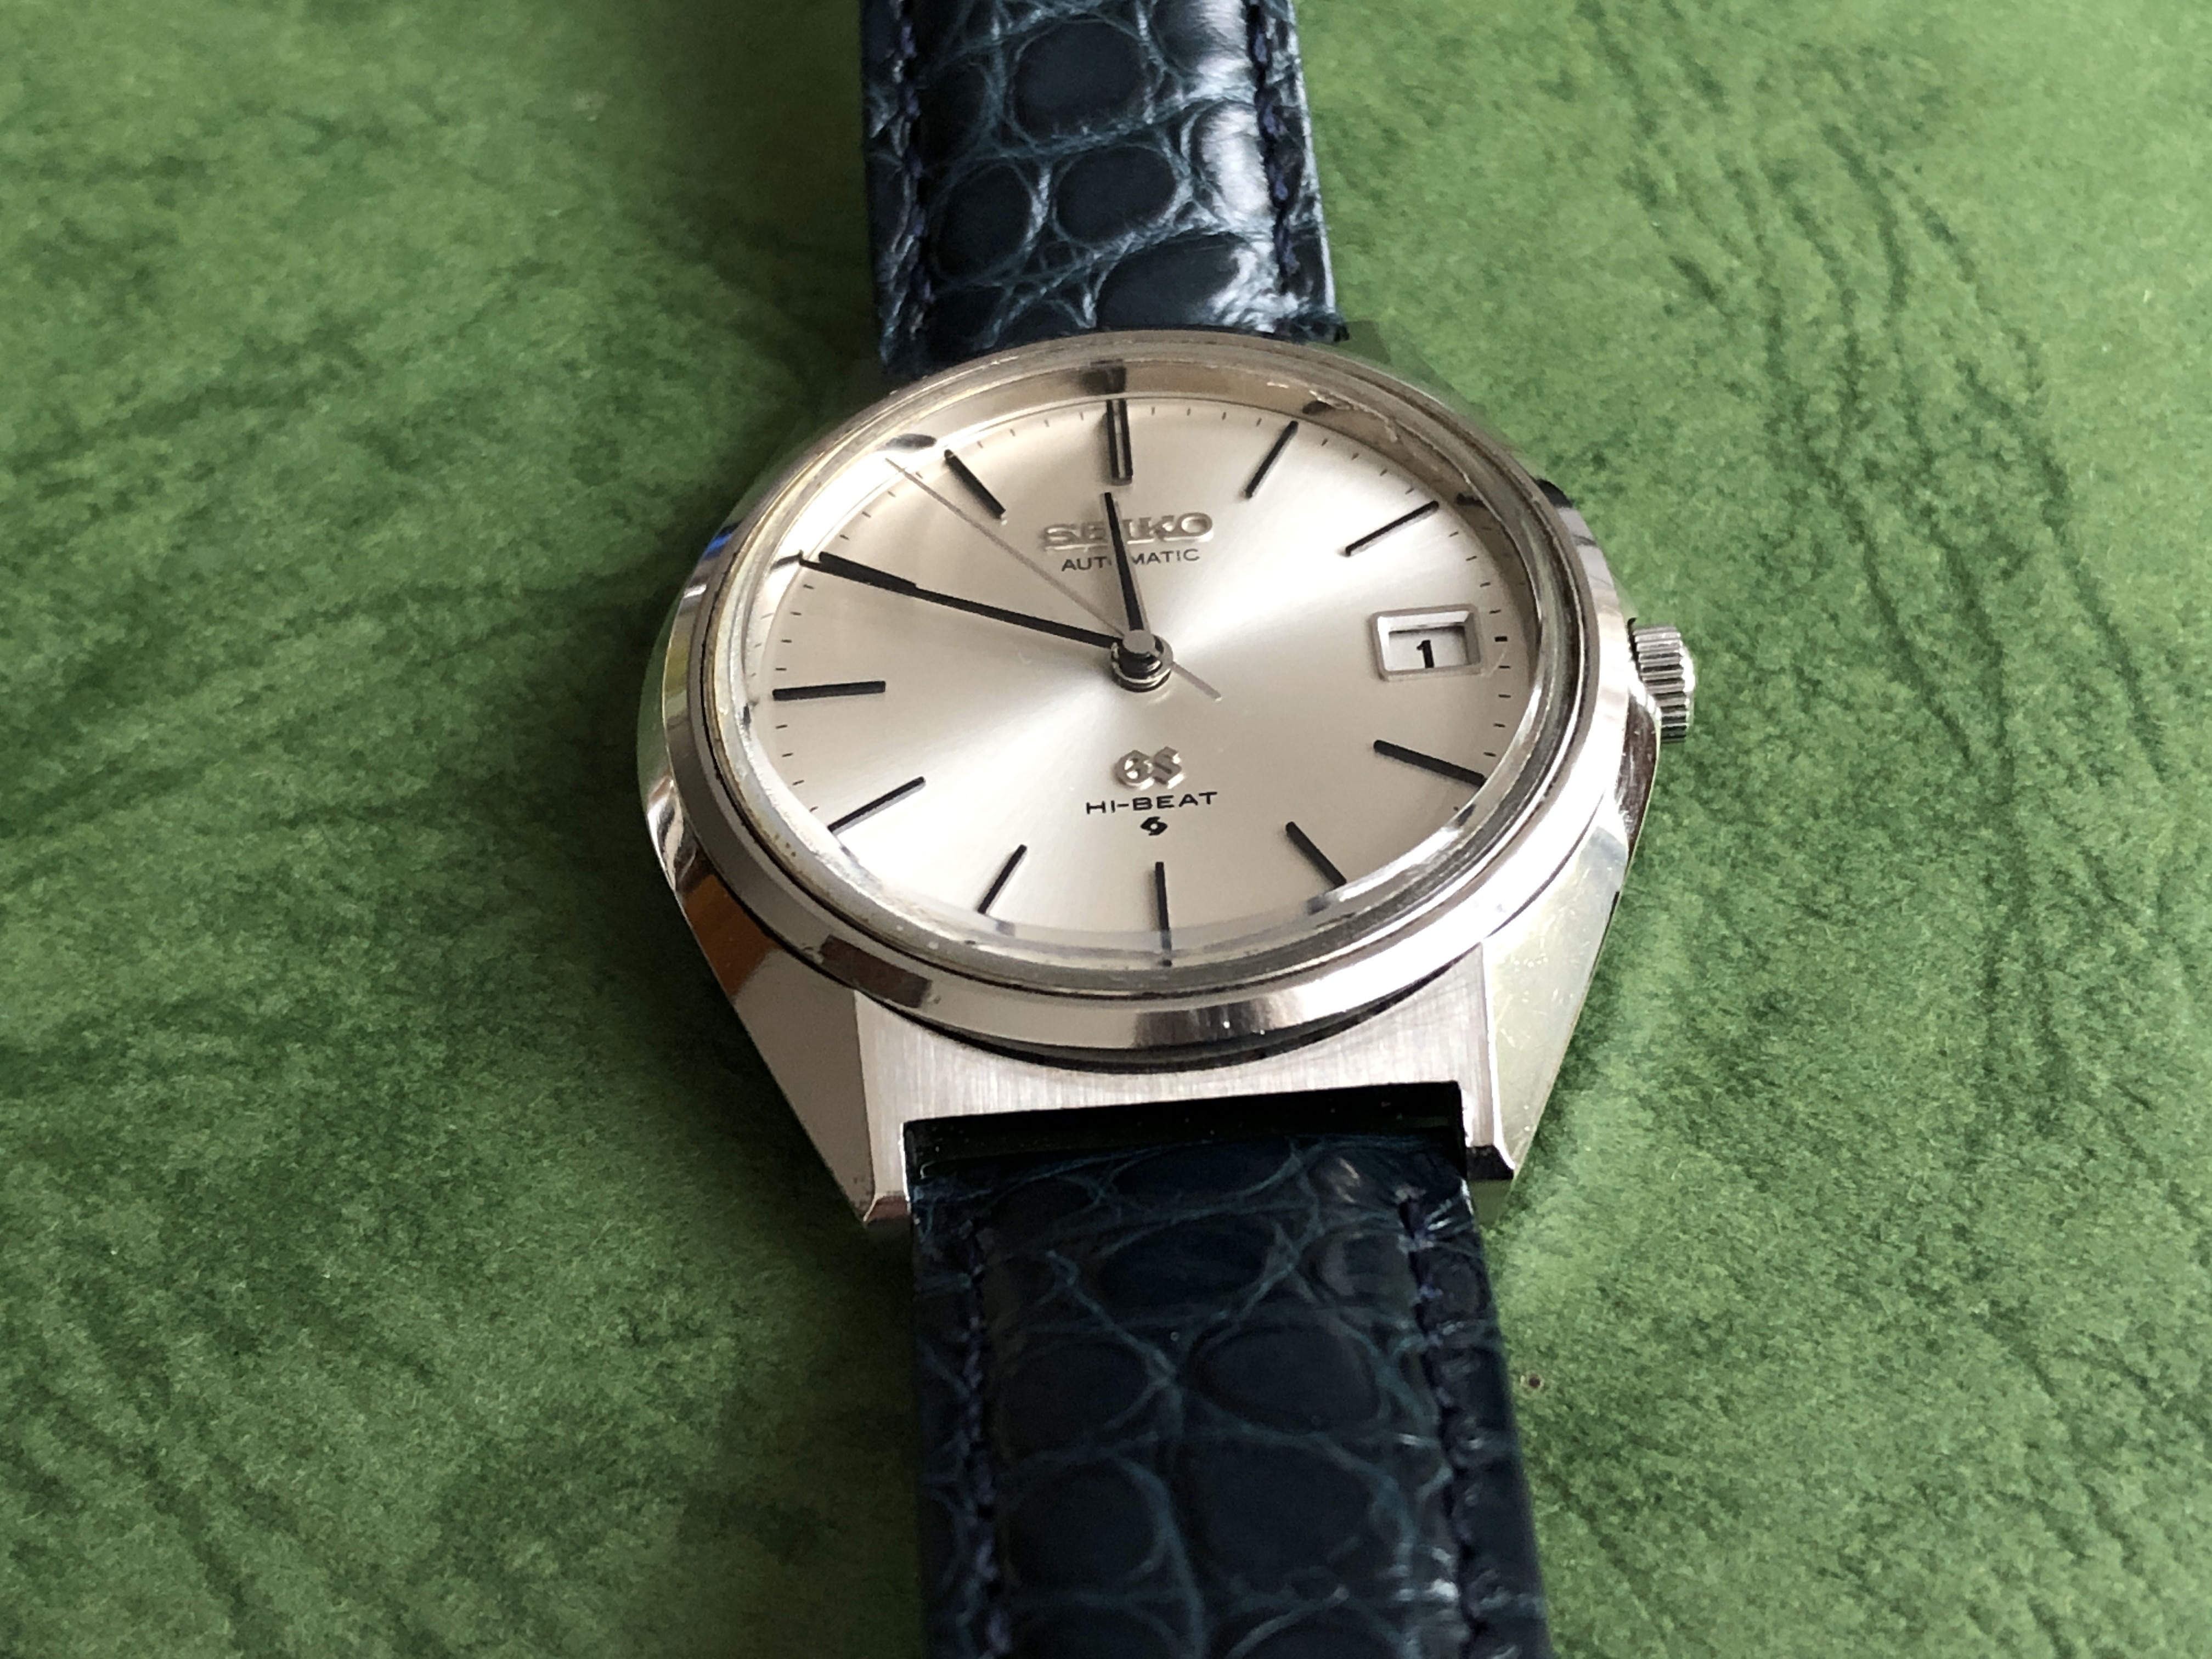 Grand Seiko 5645-7010 (For sale)